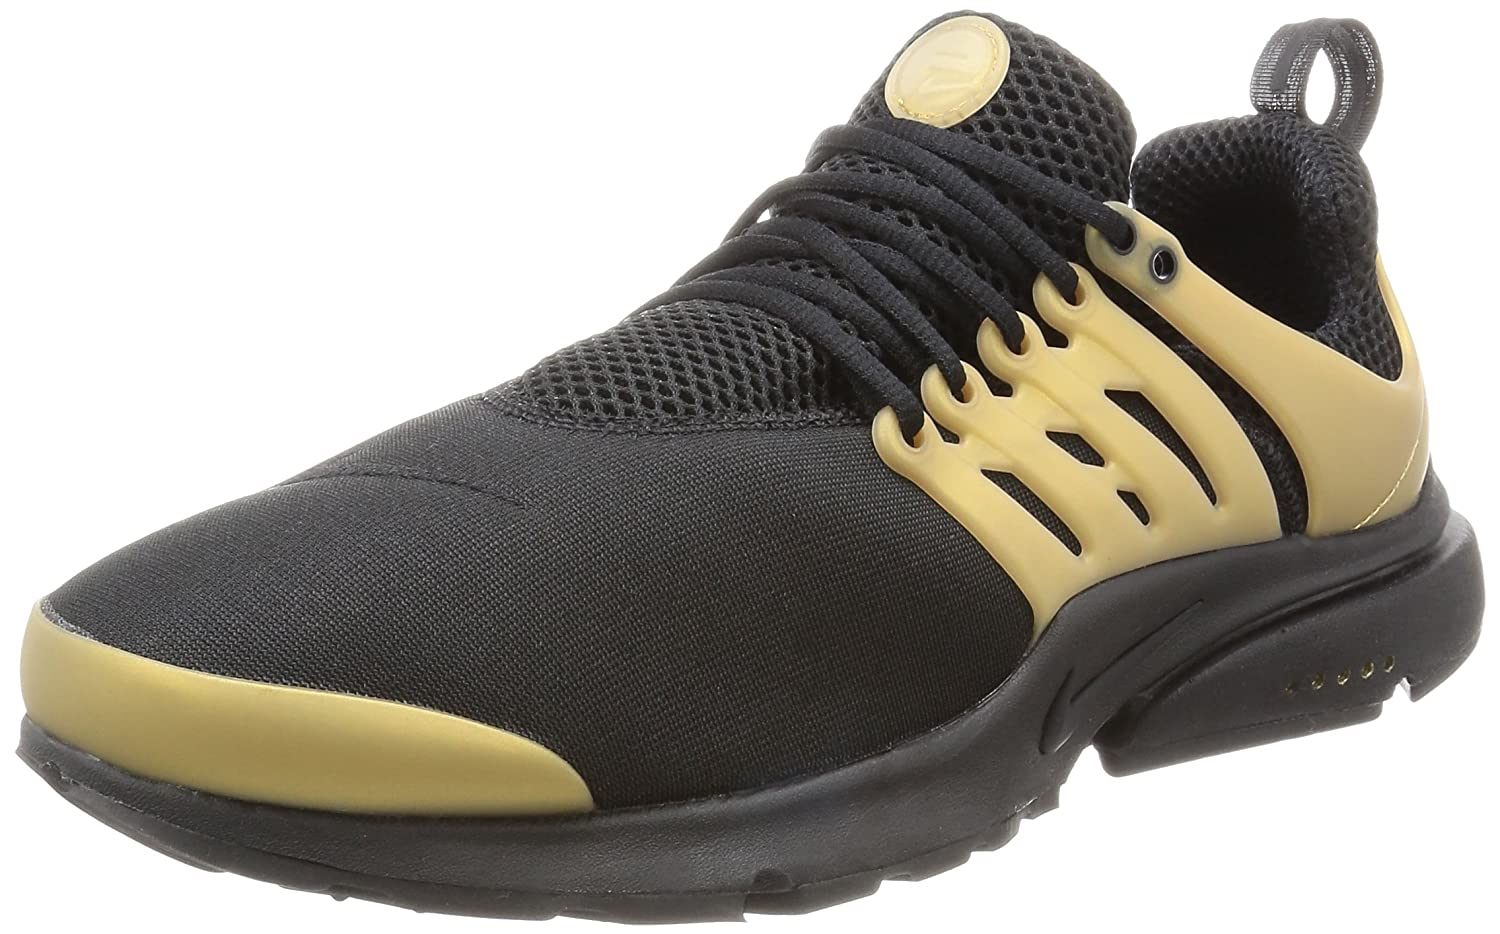 NIKE Men's Air Presto Essential B000G41GC6 8 D(M) US|Black/Black-metallic Gold